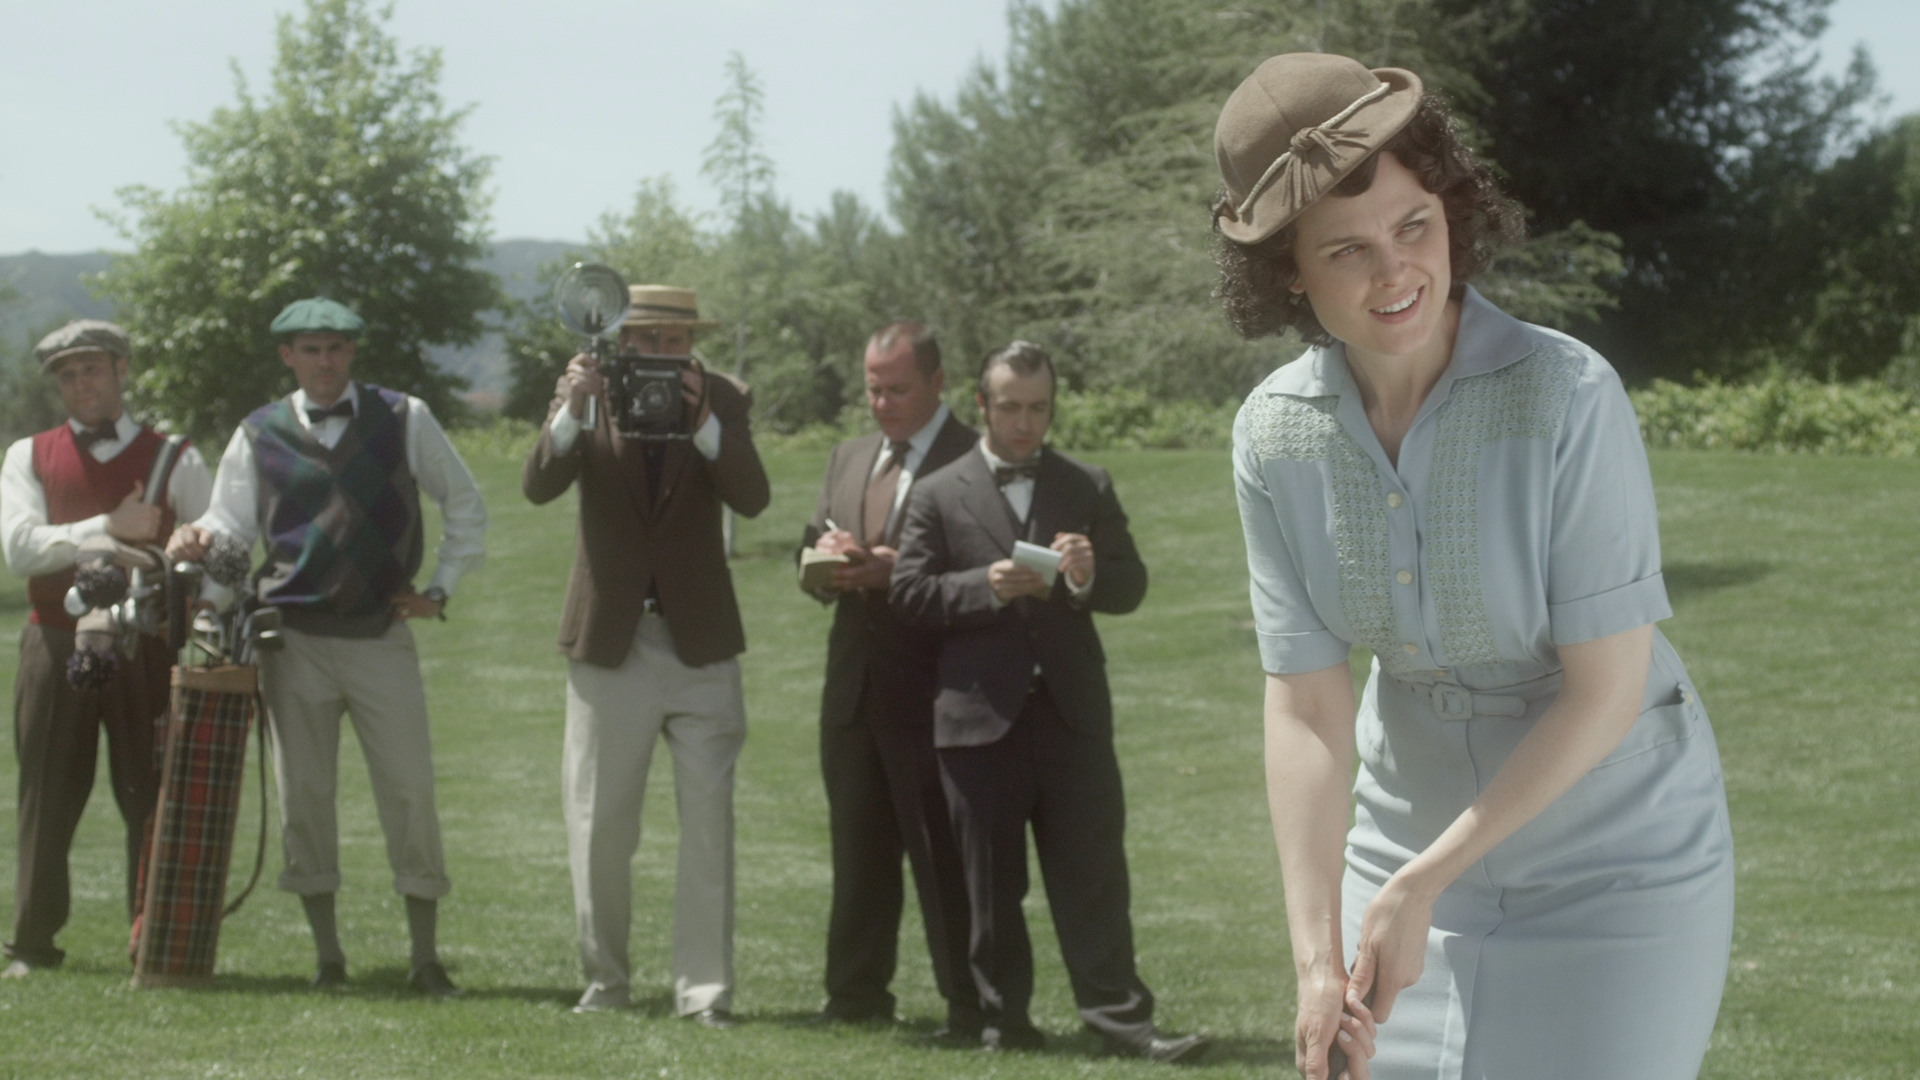 Babe Didrikson and the LPGA